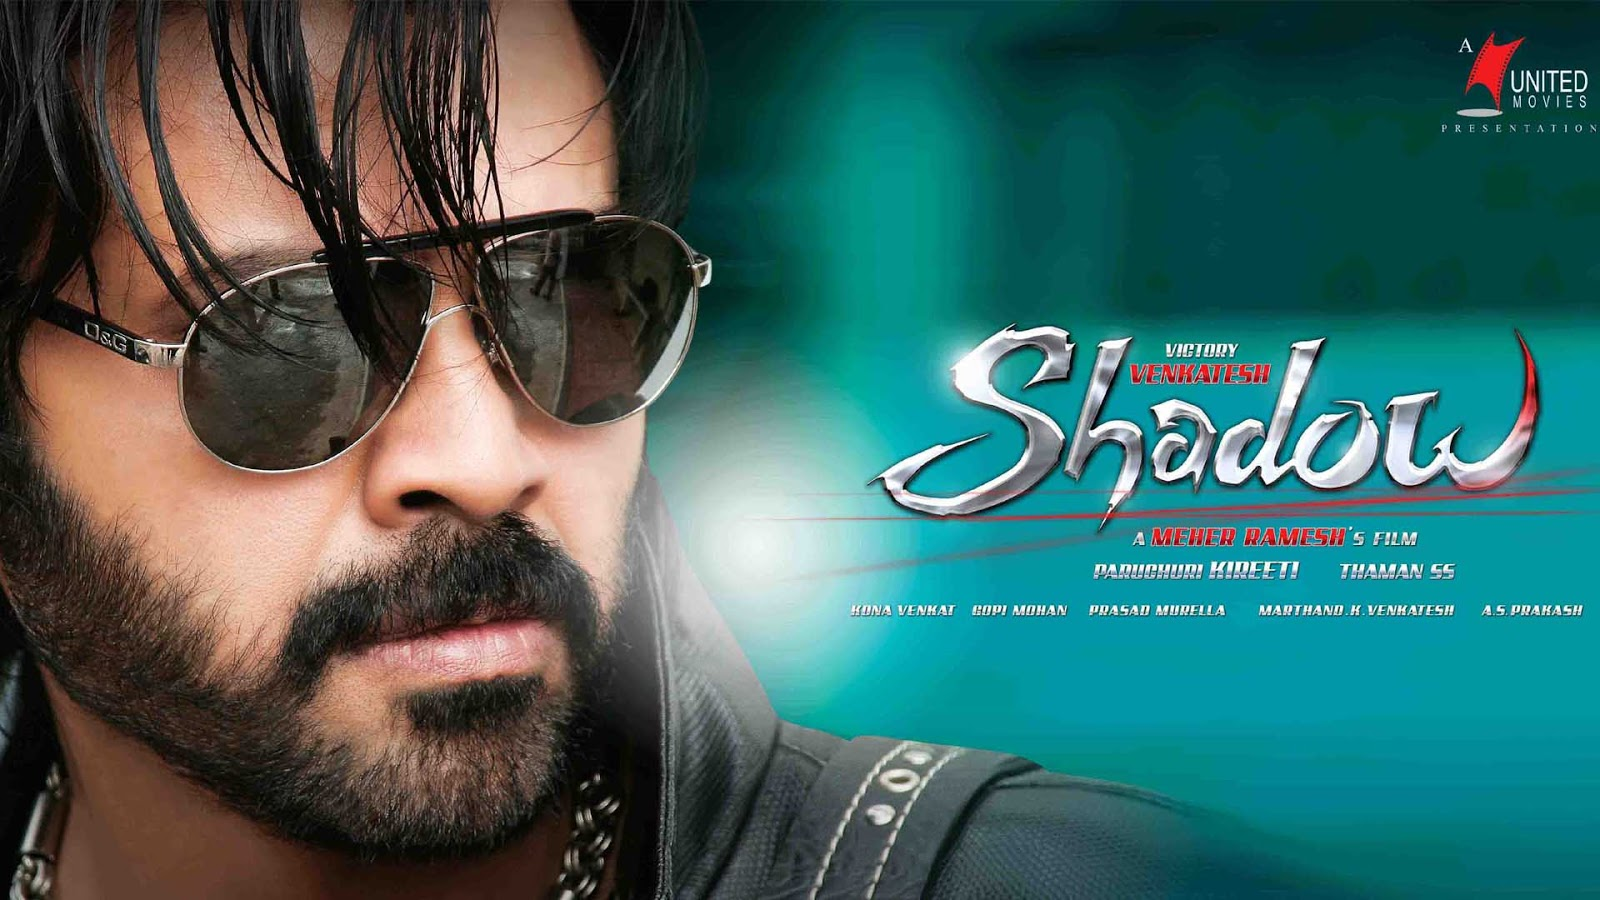 Download 101 South Star Prabhas Dekstop Background: Shadow 2013 Tollywood Movie HD Wallpapers 1080p